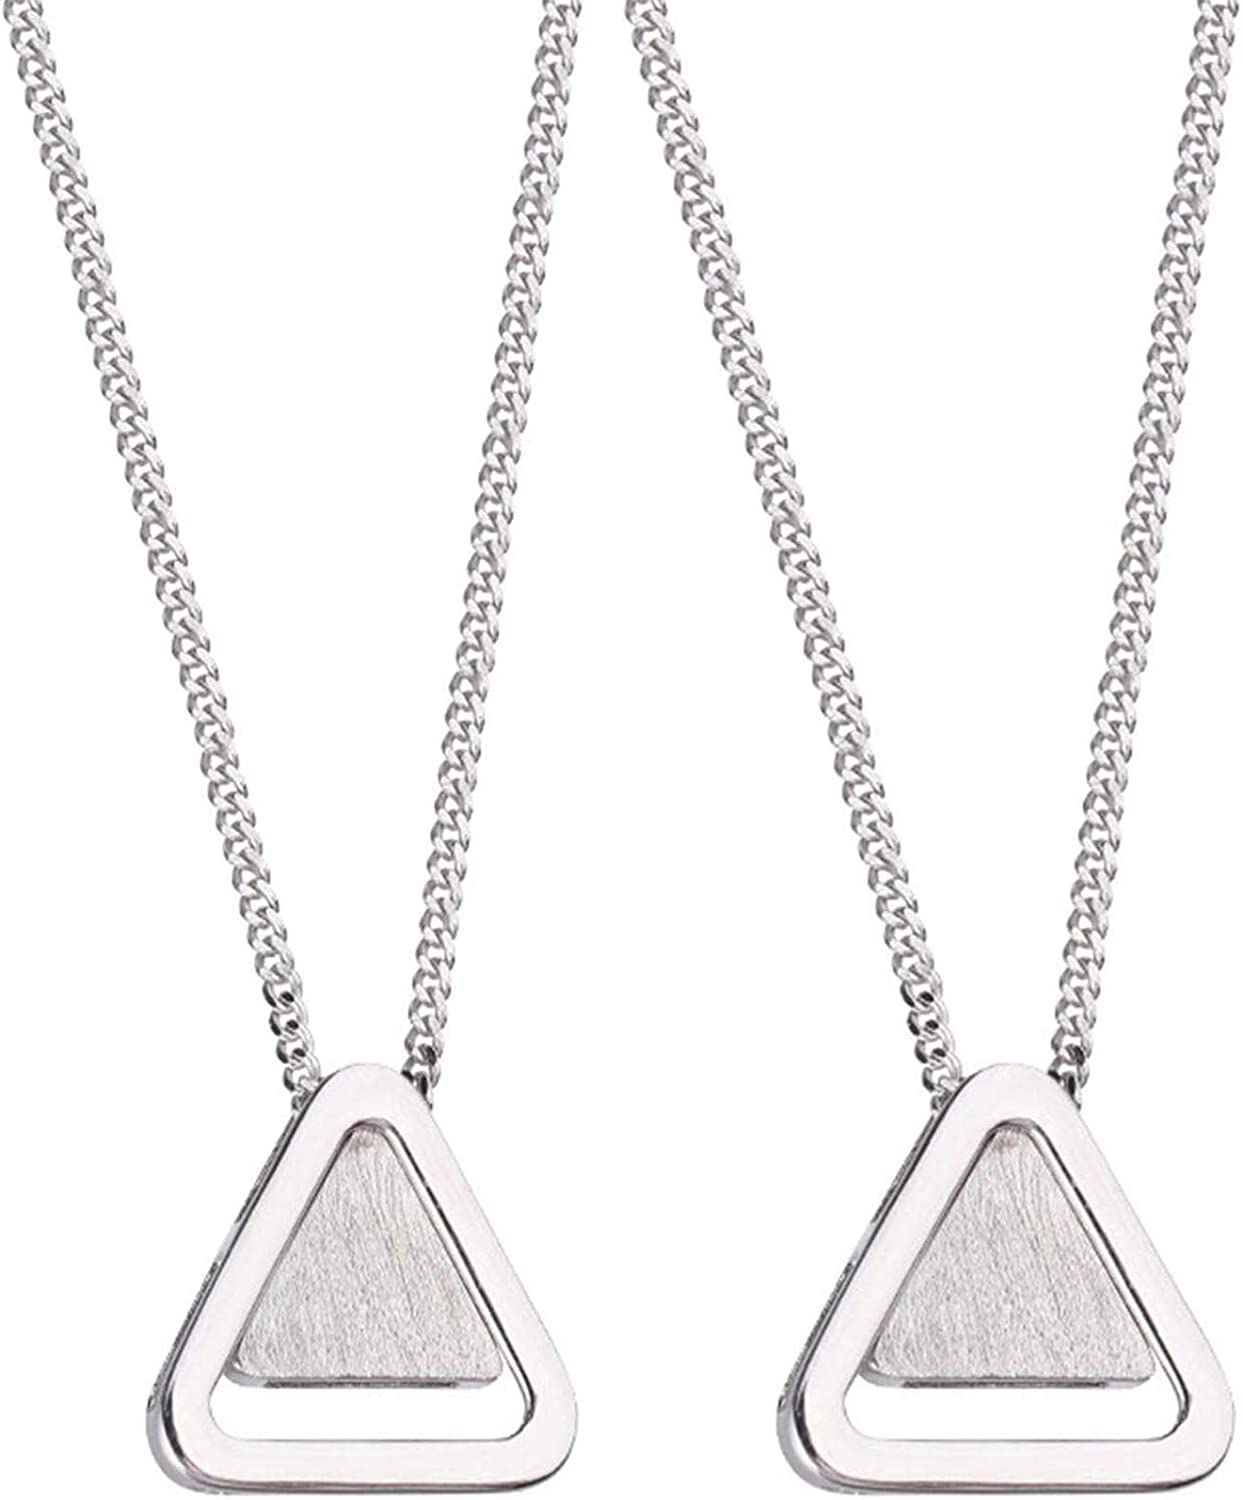 Thank You for Being My Badass Tribe Necklace, Triangles Pendant Simple Chain Neck Chain for Girls Women, Sister Triangle Necklaces for Women 2PCS